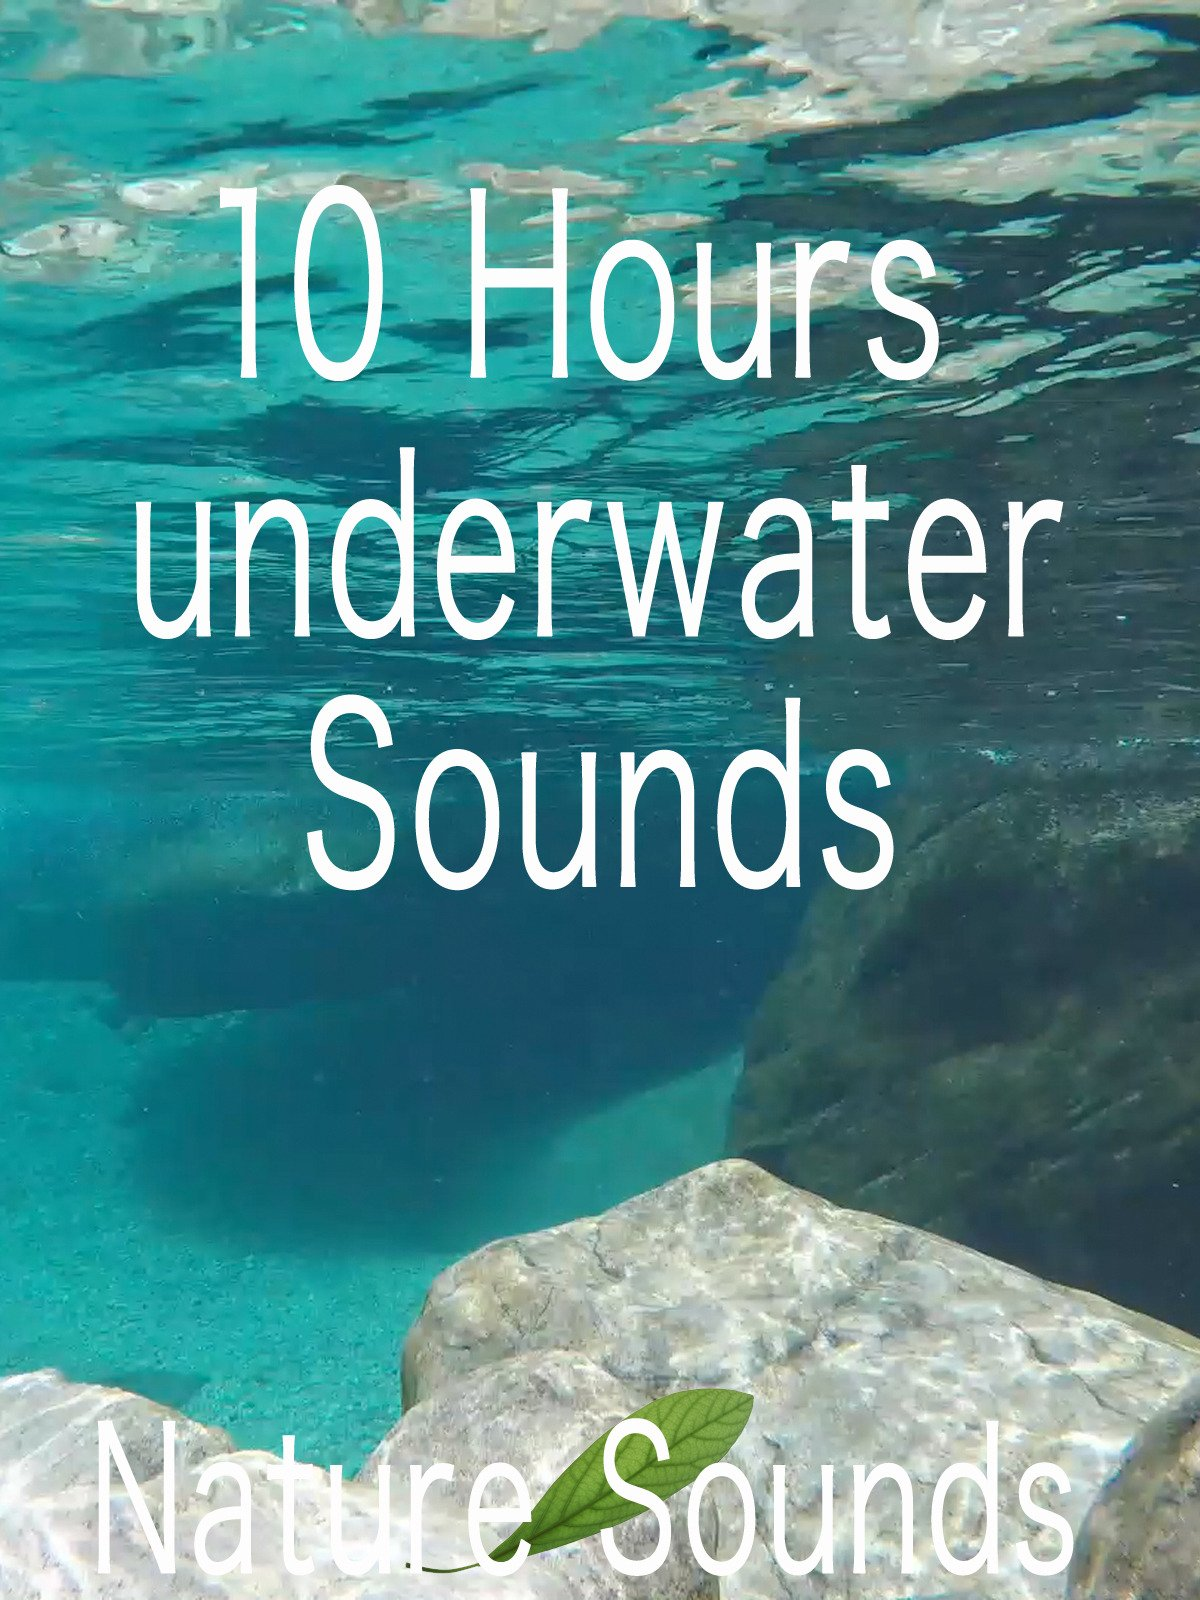 10 hours underwater sounds